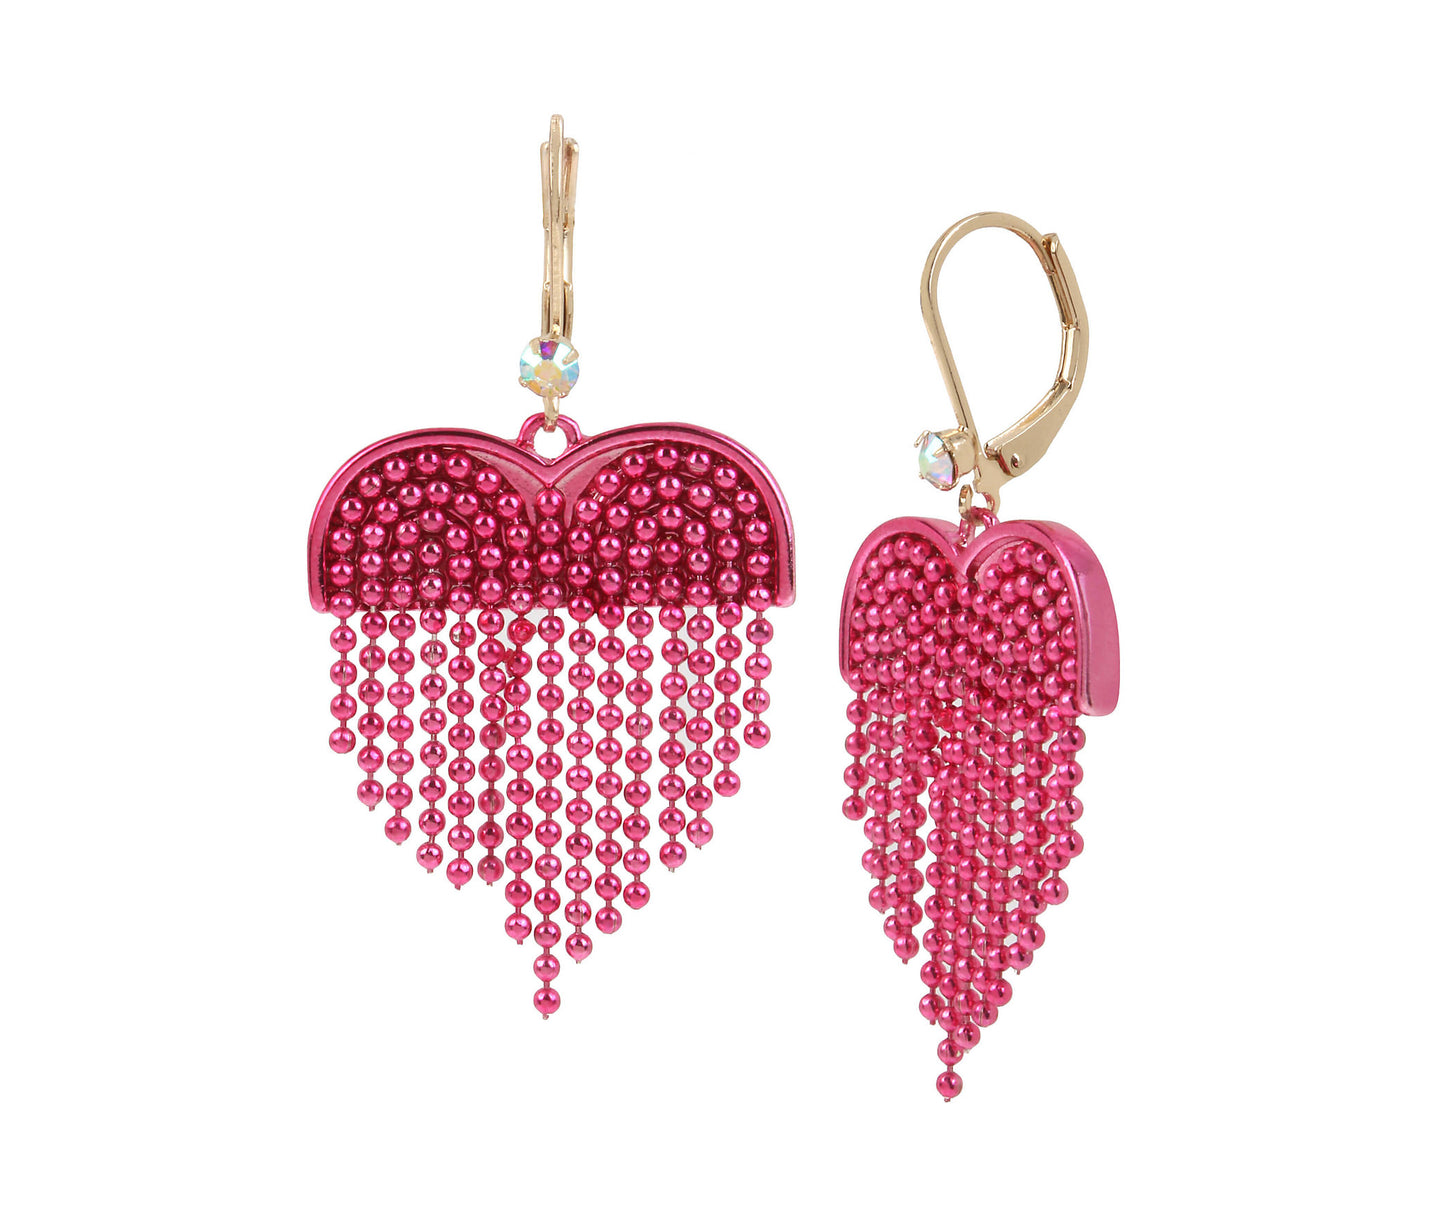 UNBREAK MY HEART FRINGE EARRINGS PINK MULTI - JEWELRY - Betsey Johnson